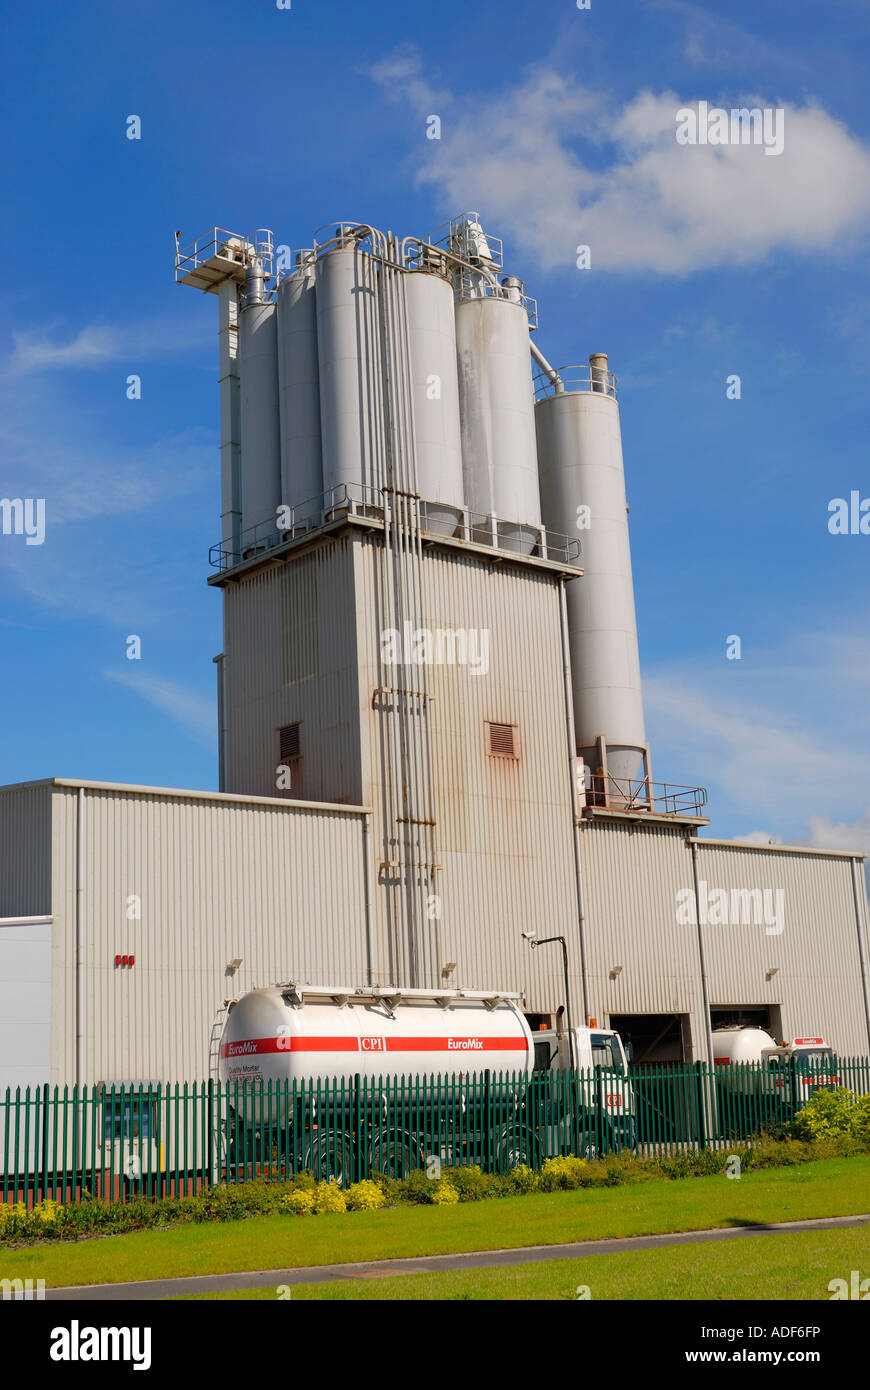 Euromix concrete and mortar plant at Cadishead and Irlam industrial park Manchester UK - Stock Image